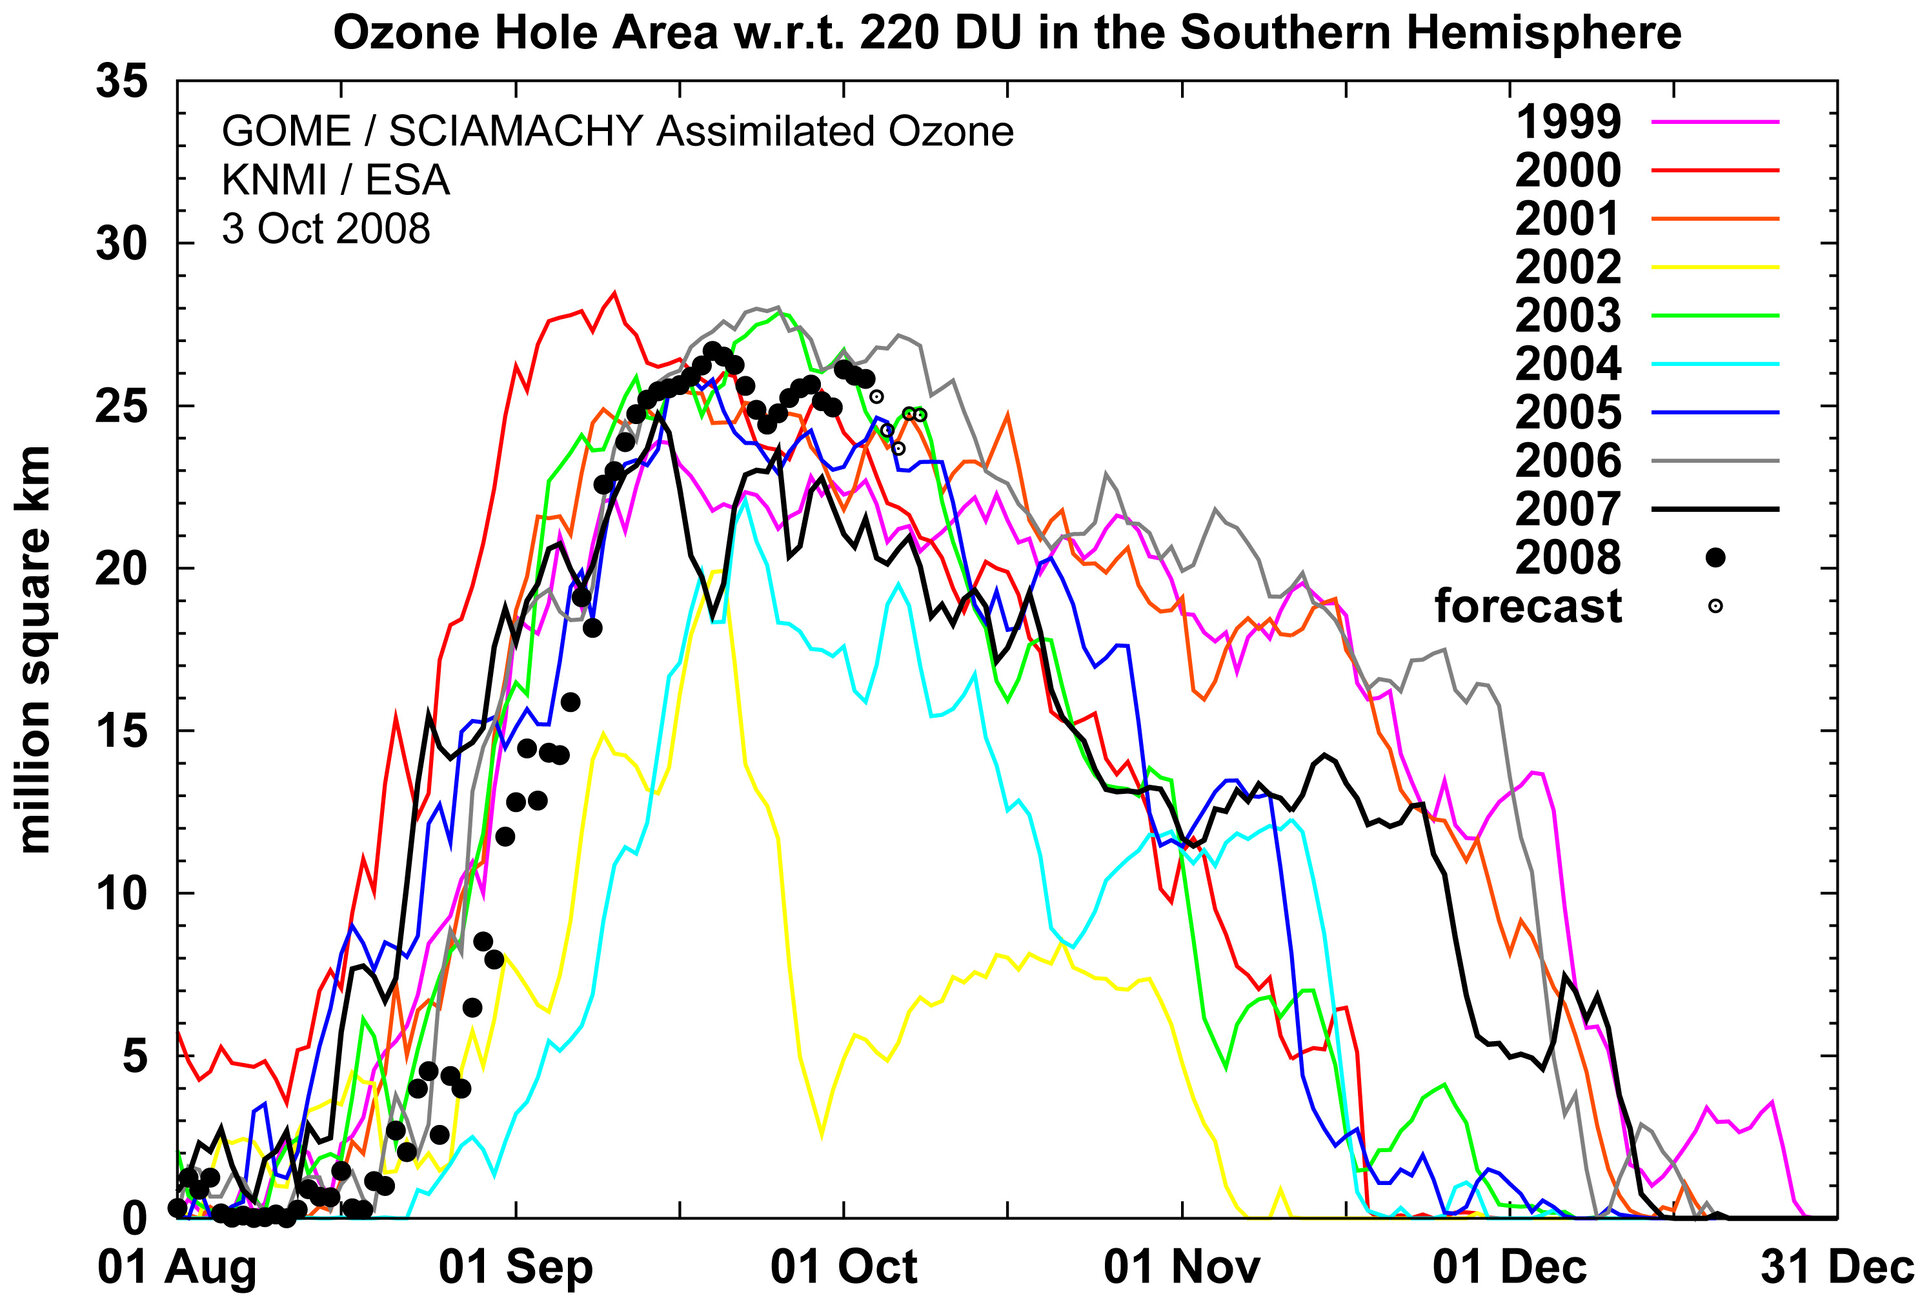 Ozone hole extension during the last 10 years